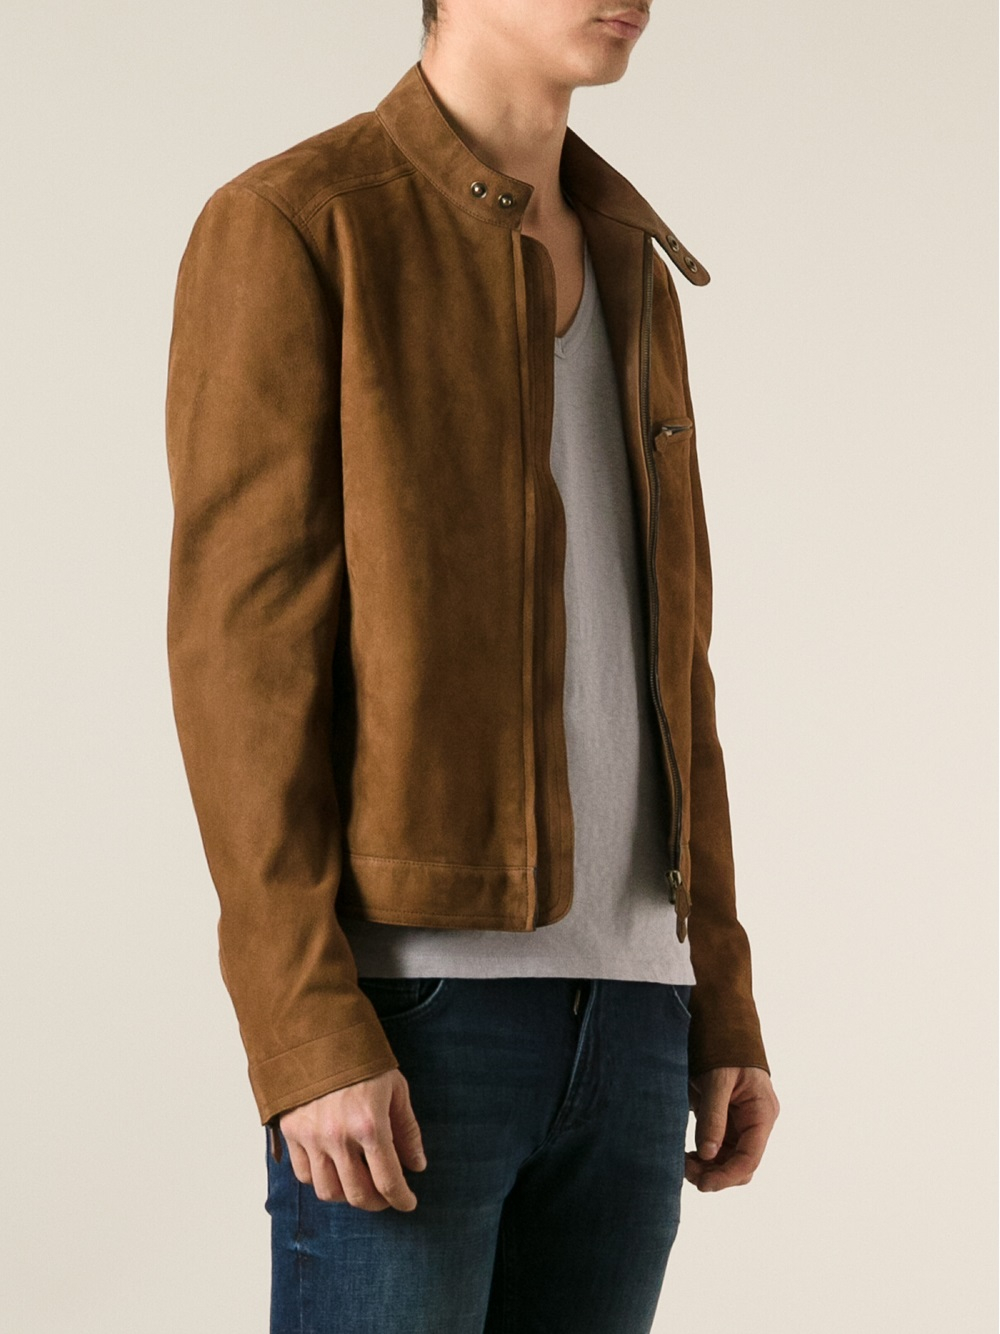 Tom ford Leather Jacket in Brown for Men | Lyst